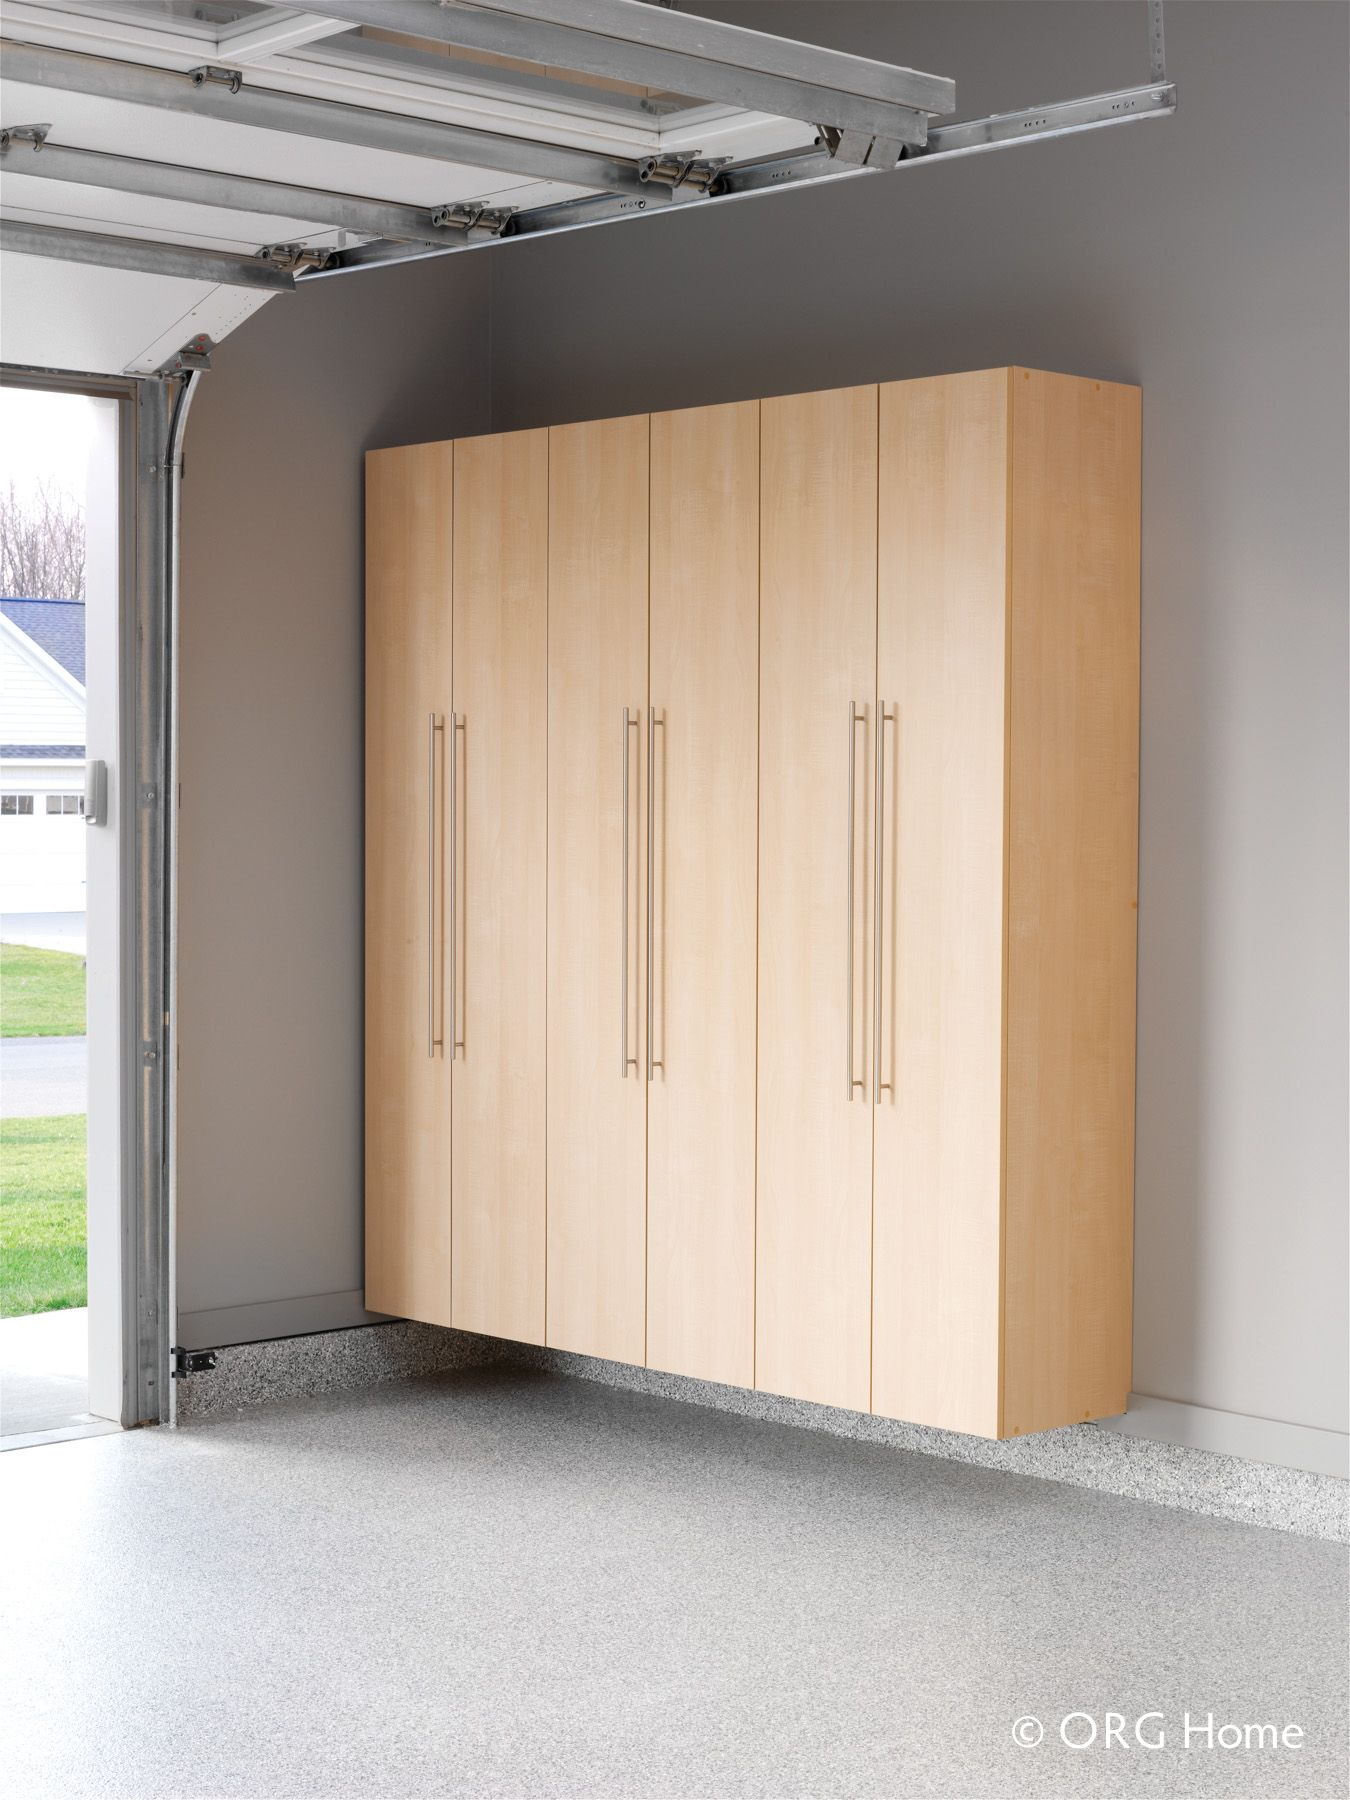 Diy Storage Cabinets For Garage Garage Cabinets Organized Spaces Of Minot Minot Nd